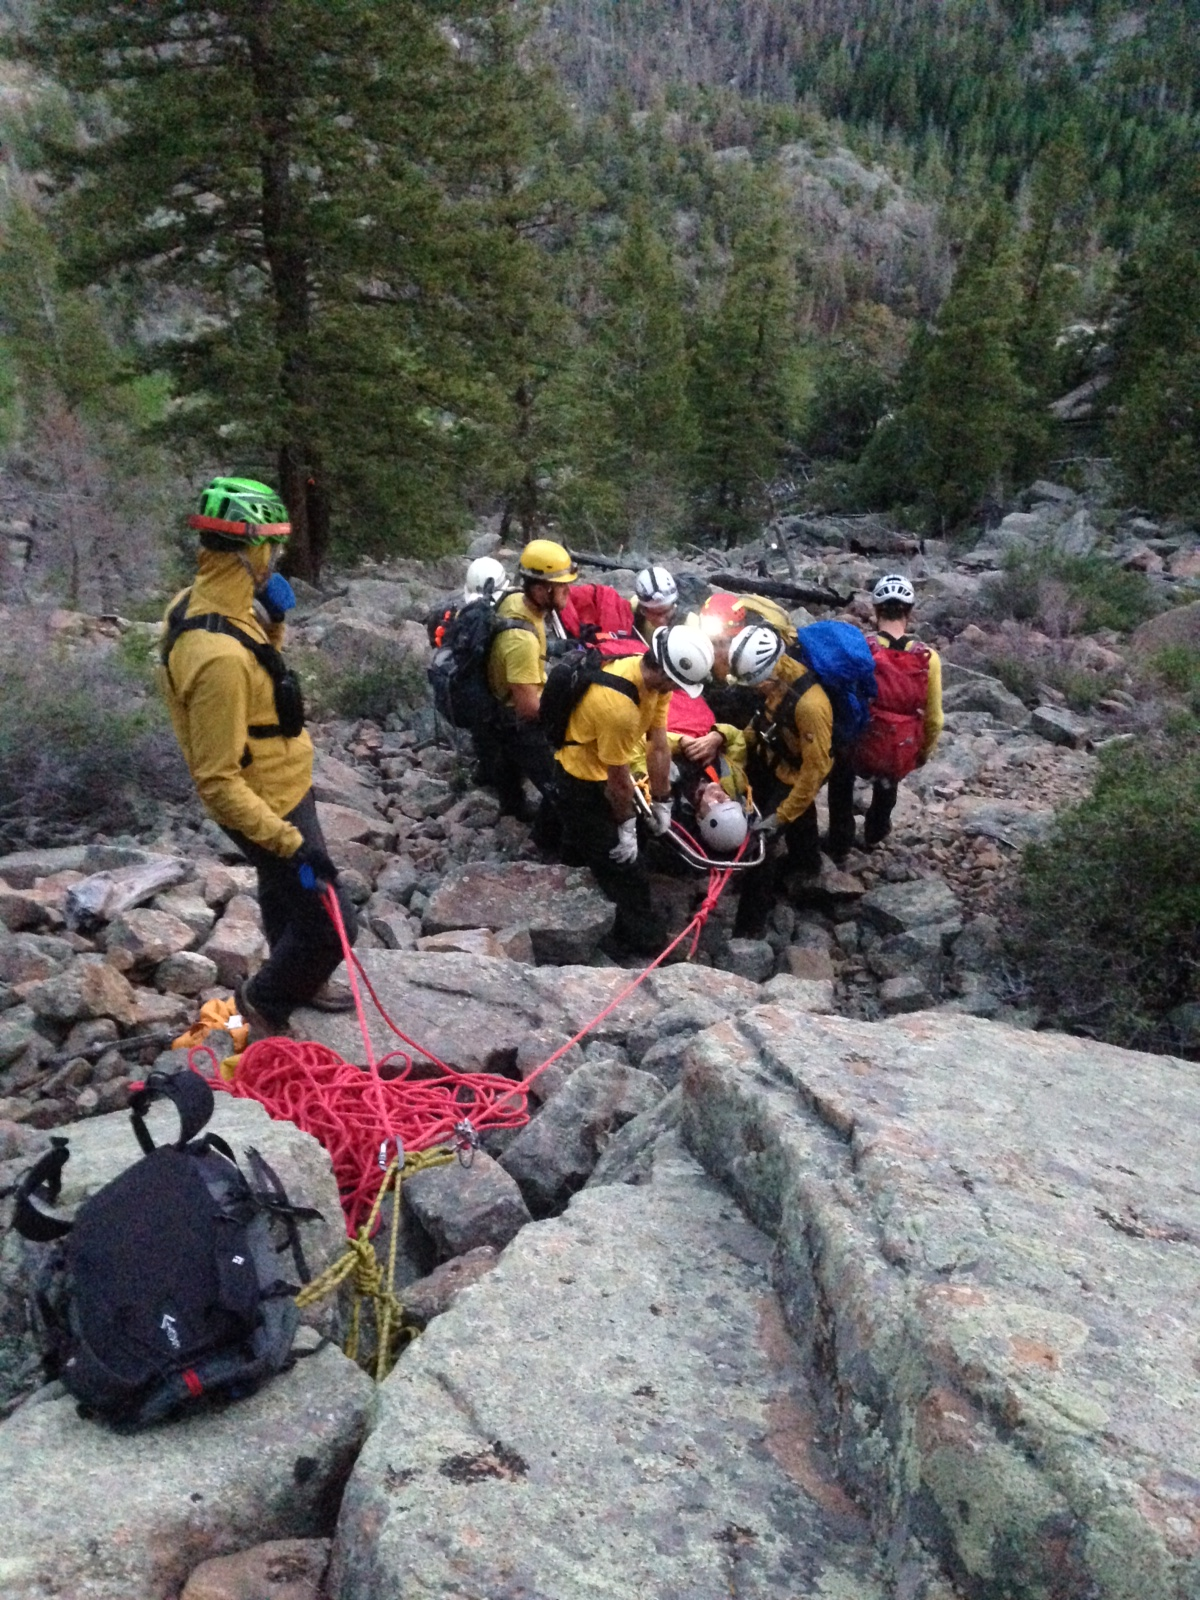 Rescue In Steep Terrain Near Fern Lake Trail